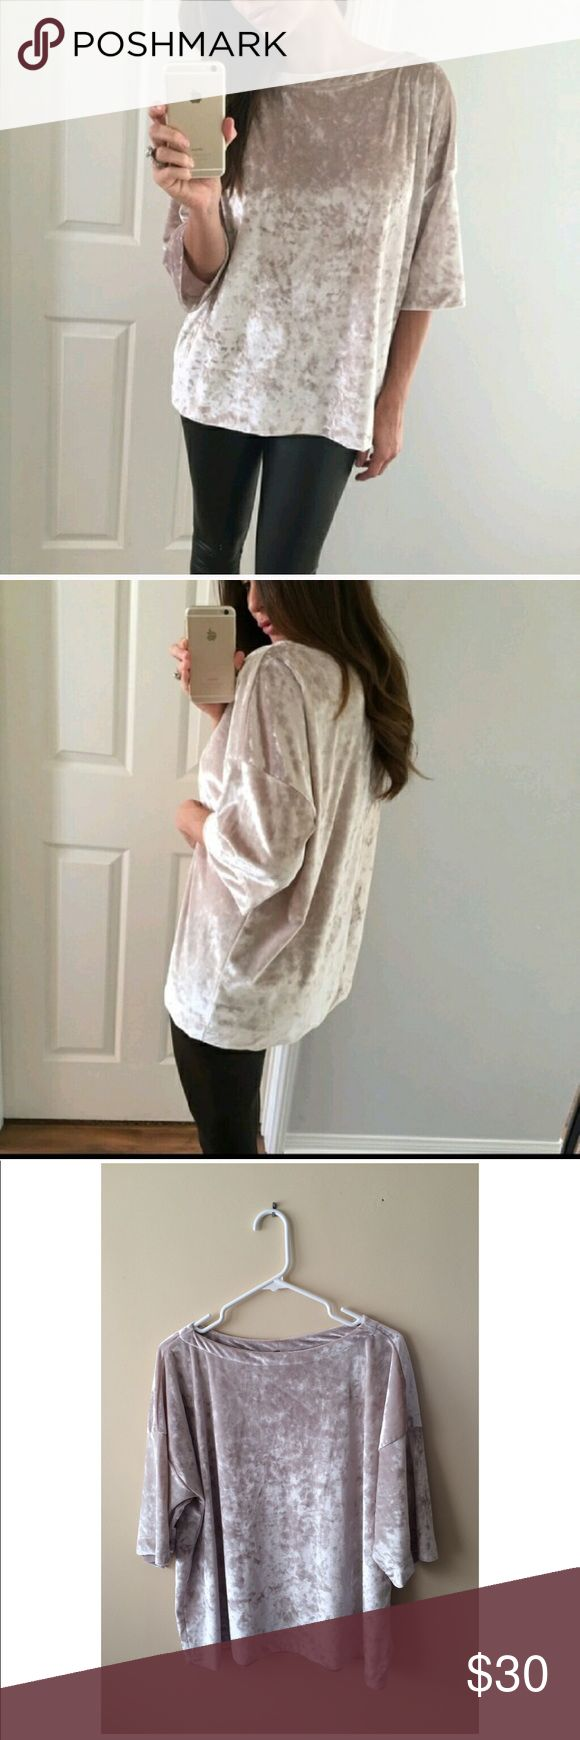 Velvet Slouchy Top Beautiful top! Only worn once. Purchased from a Poshmark boutique. Like new condition! Beige/cream color. Loose, slouchy fit. Super soft! Boat neck style. 93% polyester 7% spandex. ***PRICE FIRM. Tops Tees - Short Sleeve